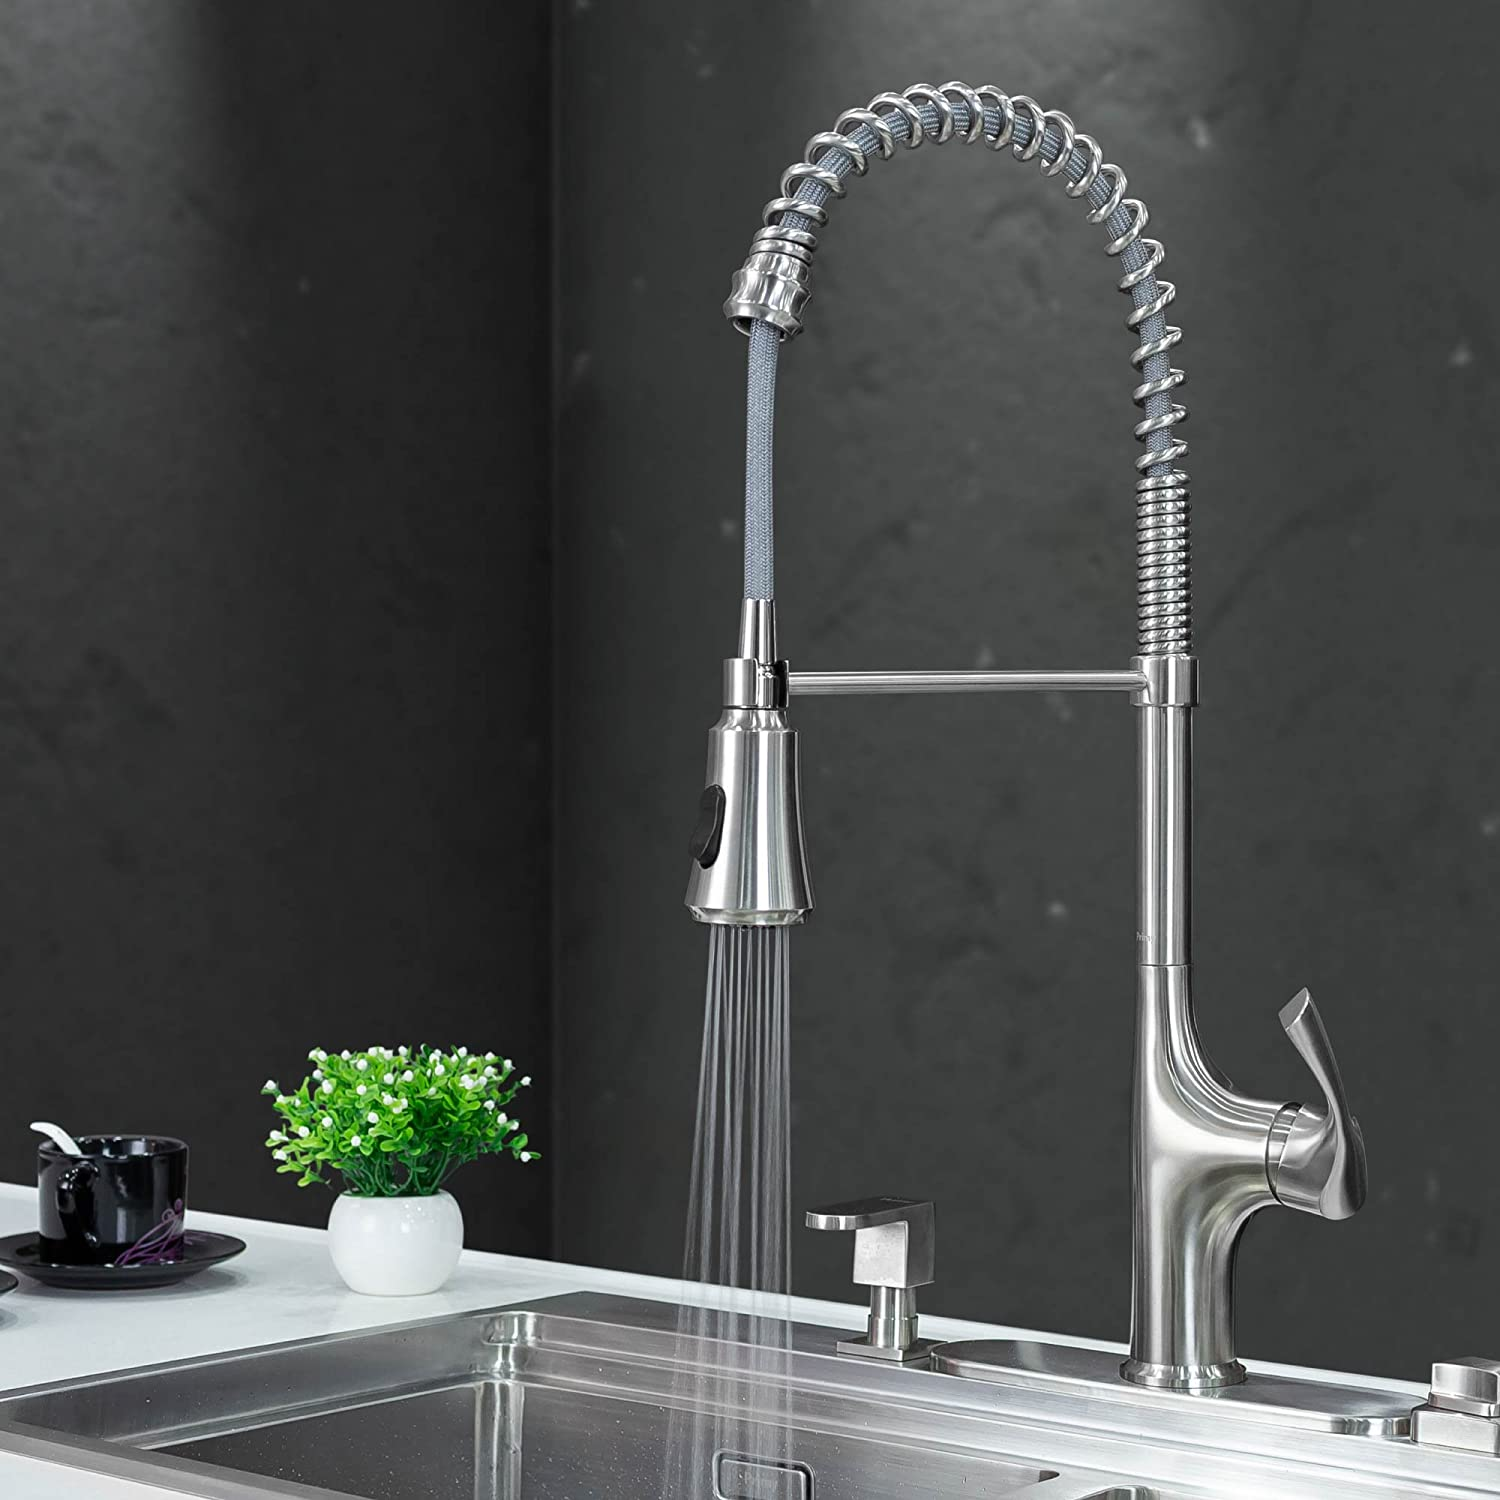 Primy Commercial Kitchen Faucet Lead-Free Single Level Stainless ...